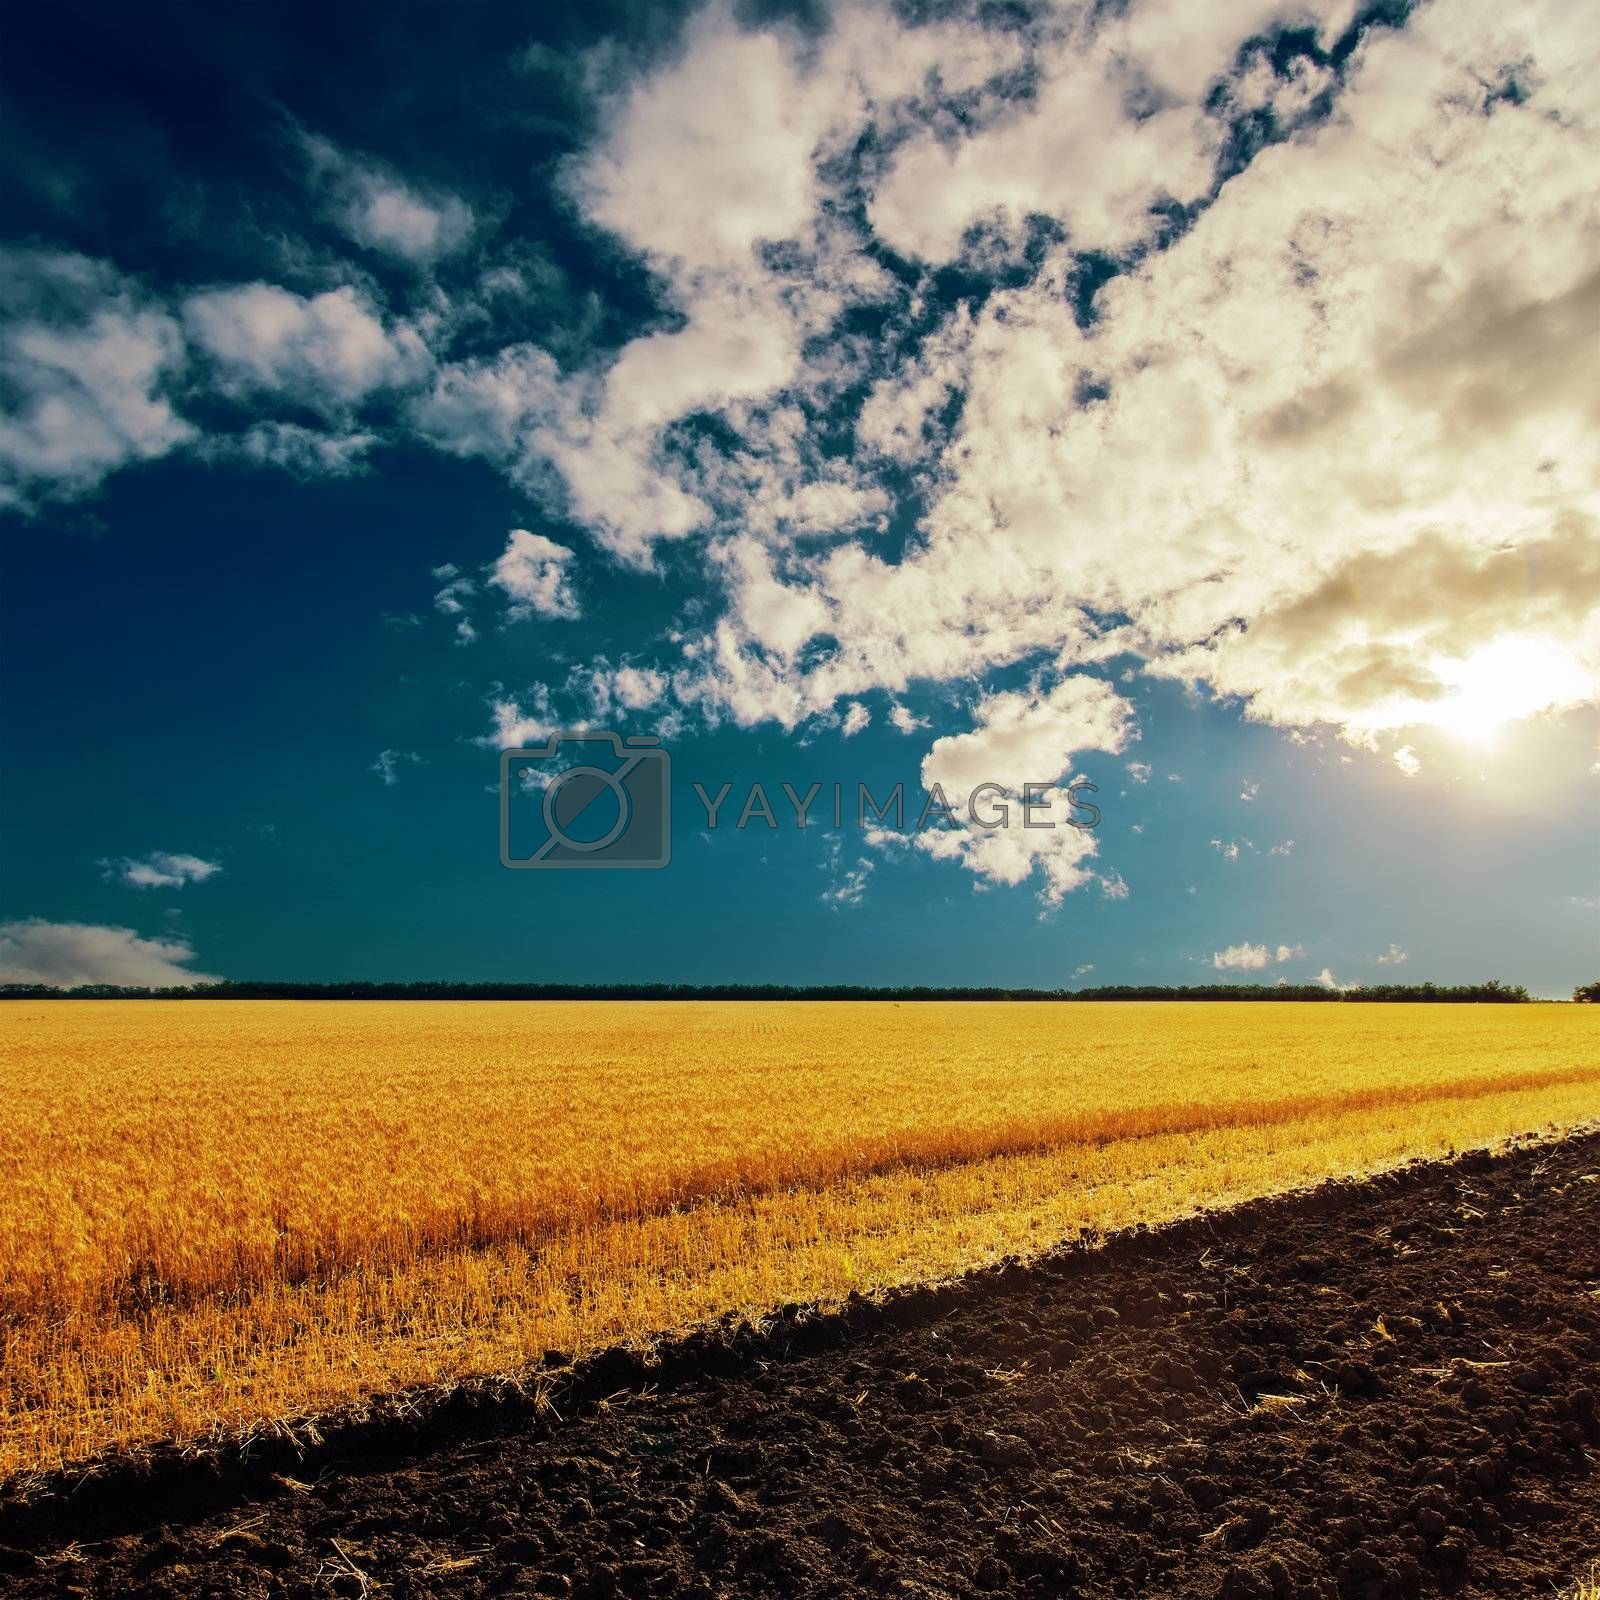 sunset and field with harvest